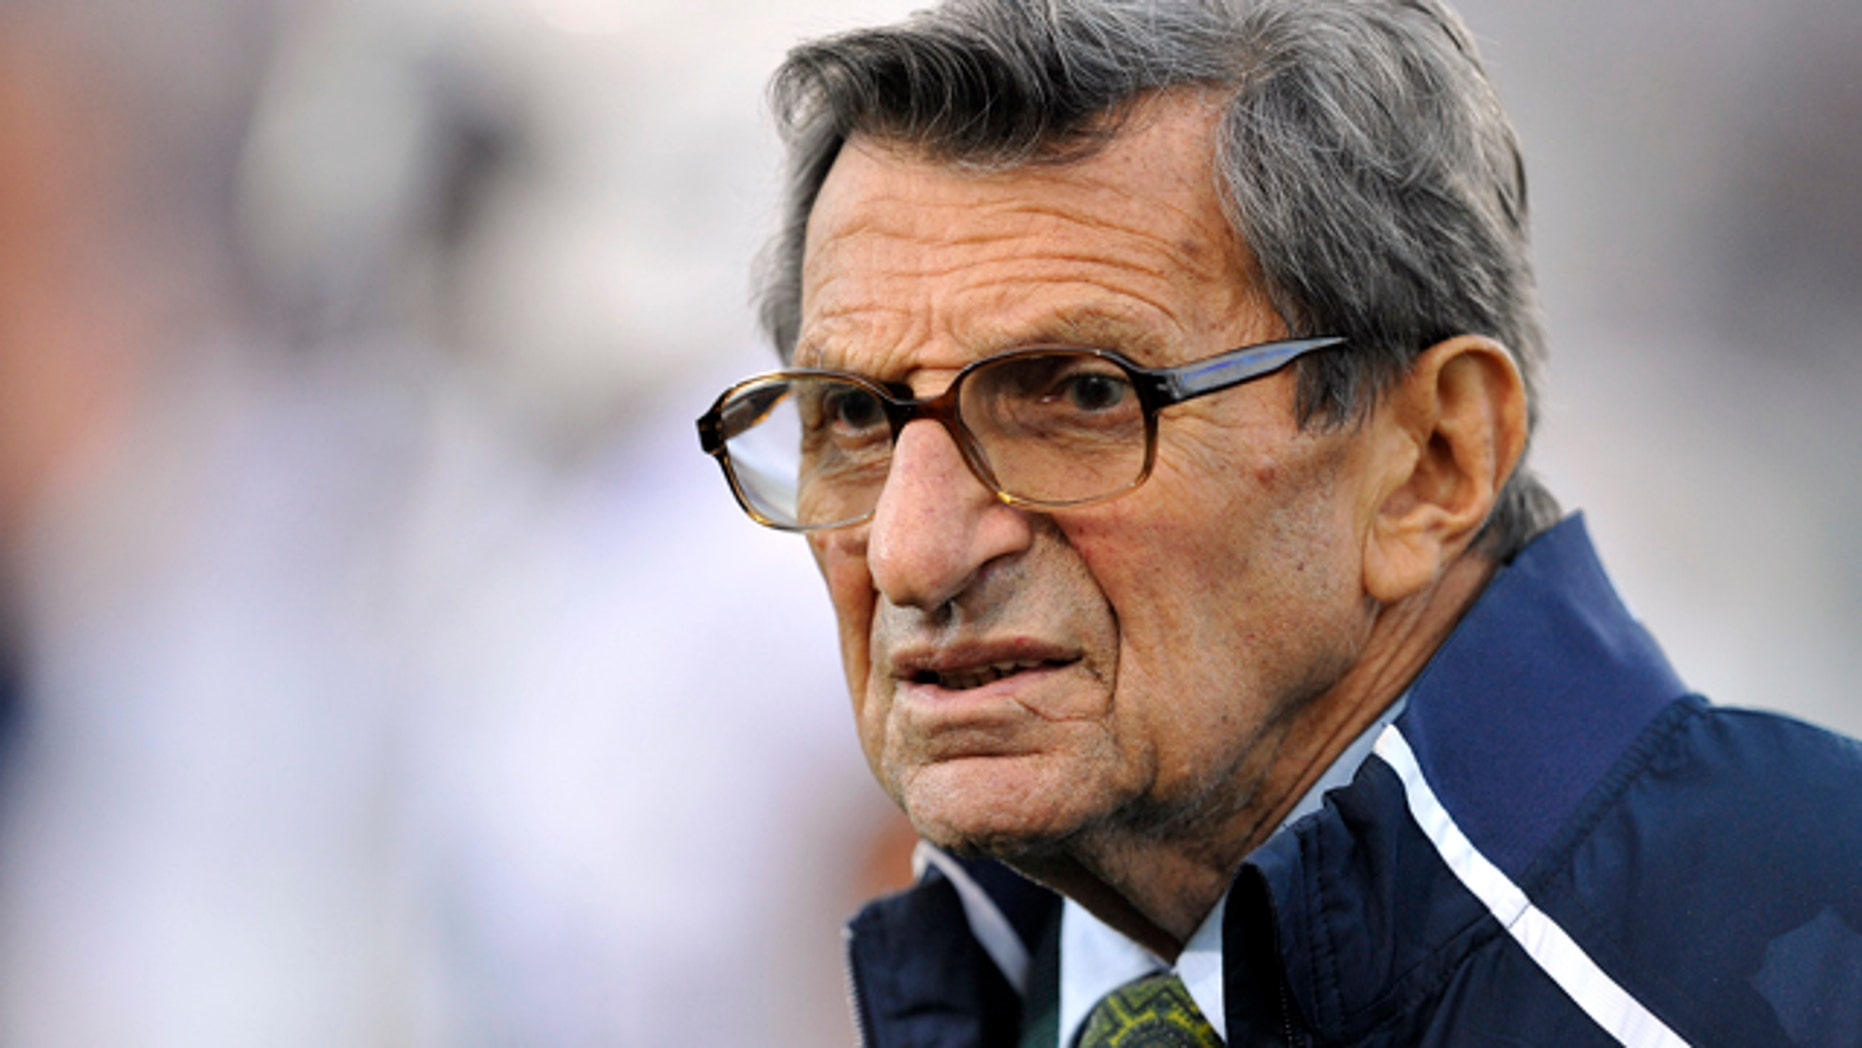 FILE - In this Oct. 22, 2011 file photo, Penn State coach Joe Paterno stands on the field before his team's NCAA college football game against Northwestern, in Evanston, Ill.